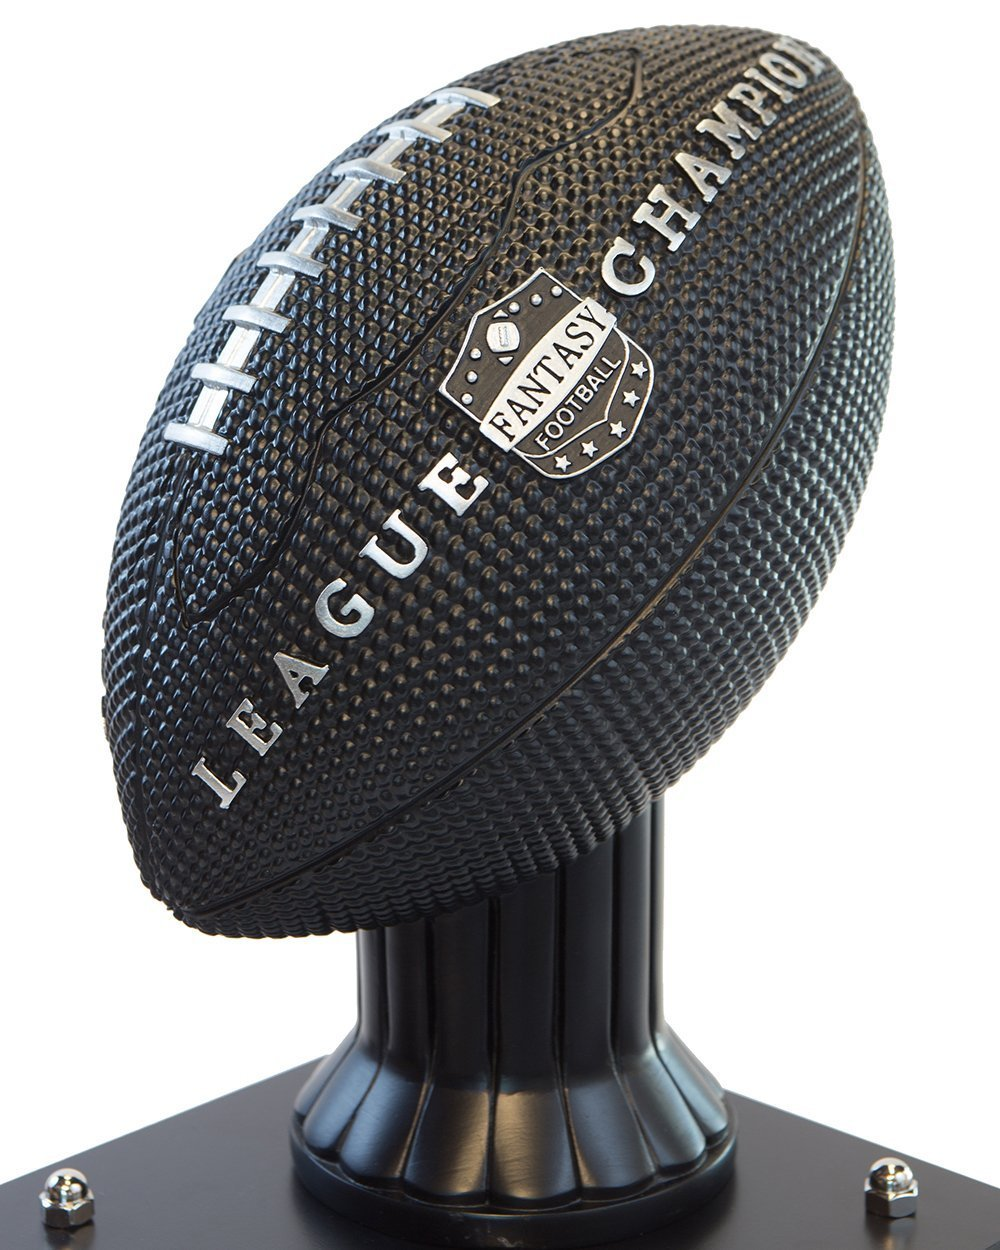 Customizable 36'' Fantasy Football Trophy Free Engraving up to 19 Years Past Winners (Vivid Black) (36'' Tall, Black Columns) by TrophySmack